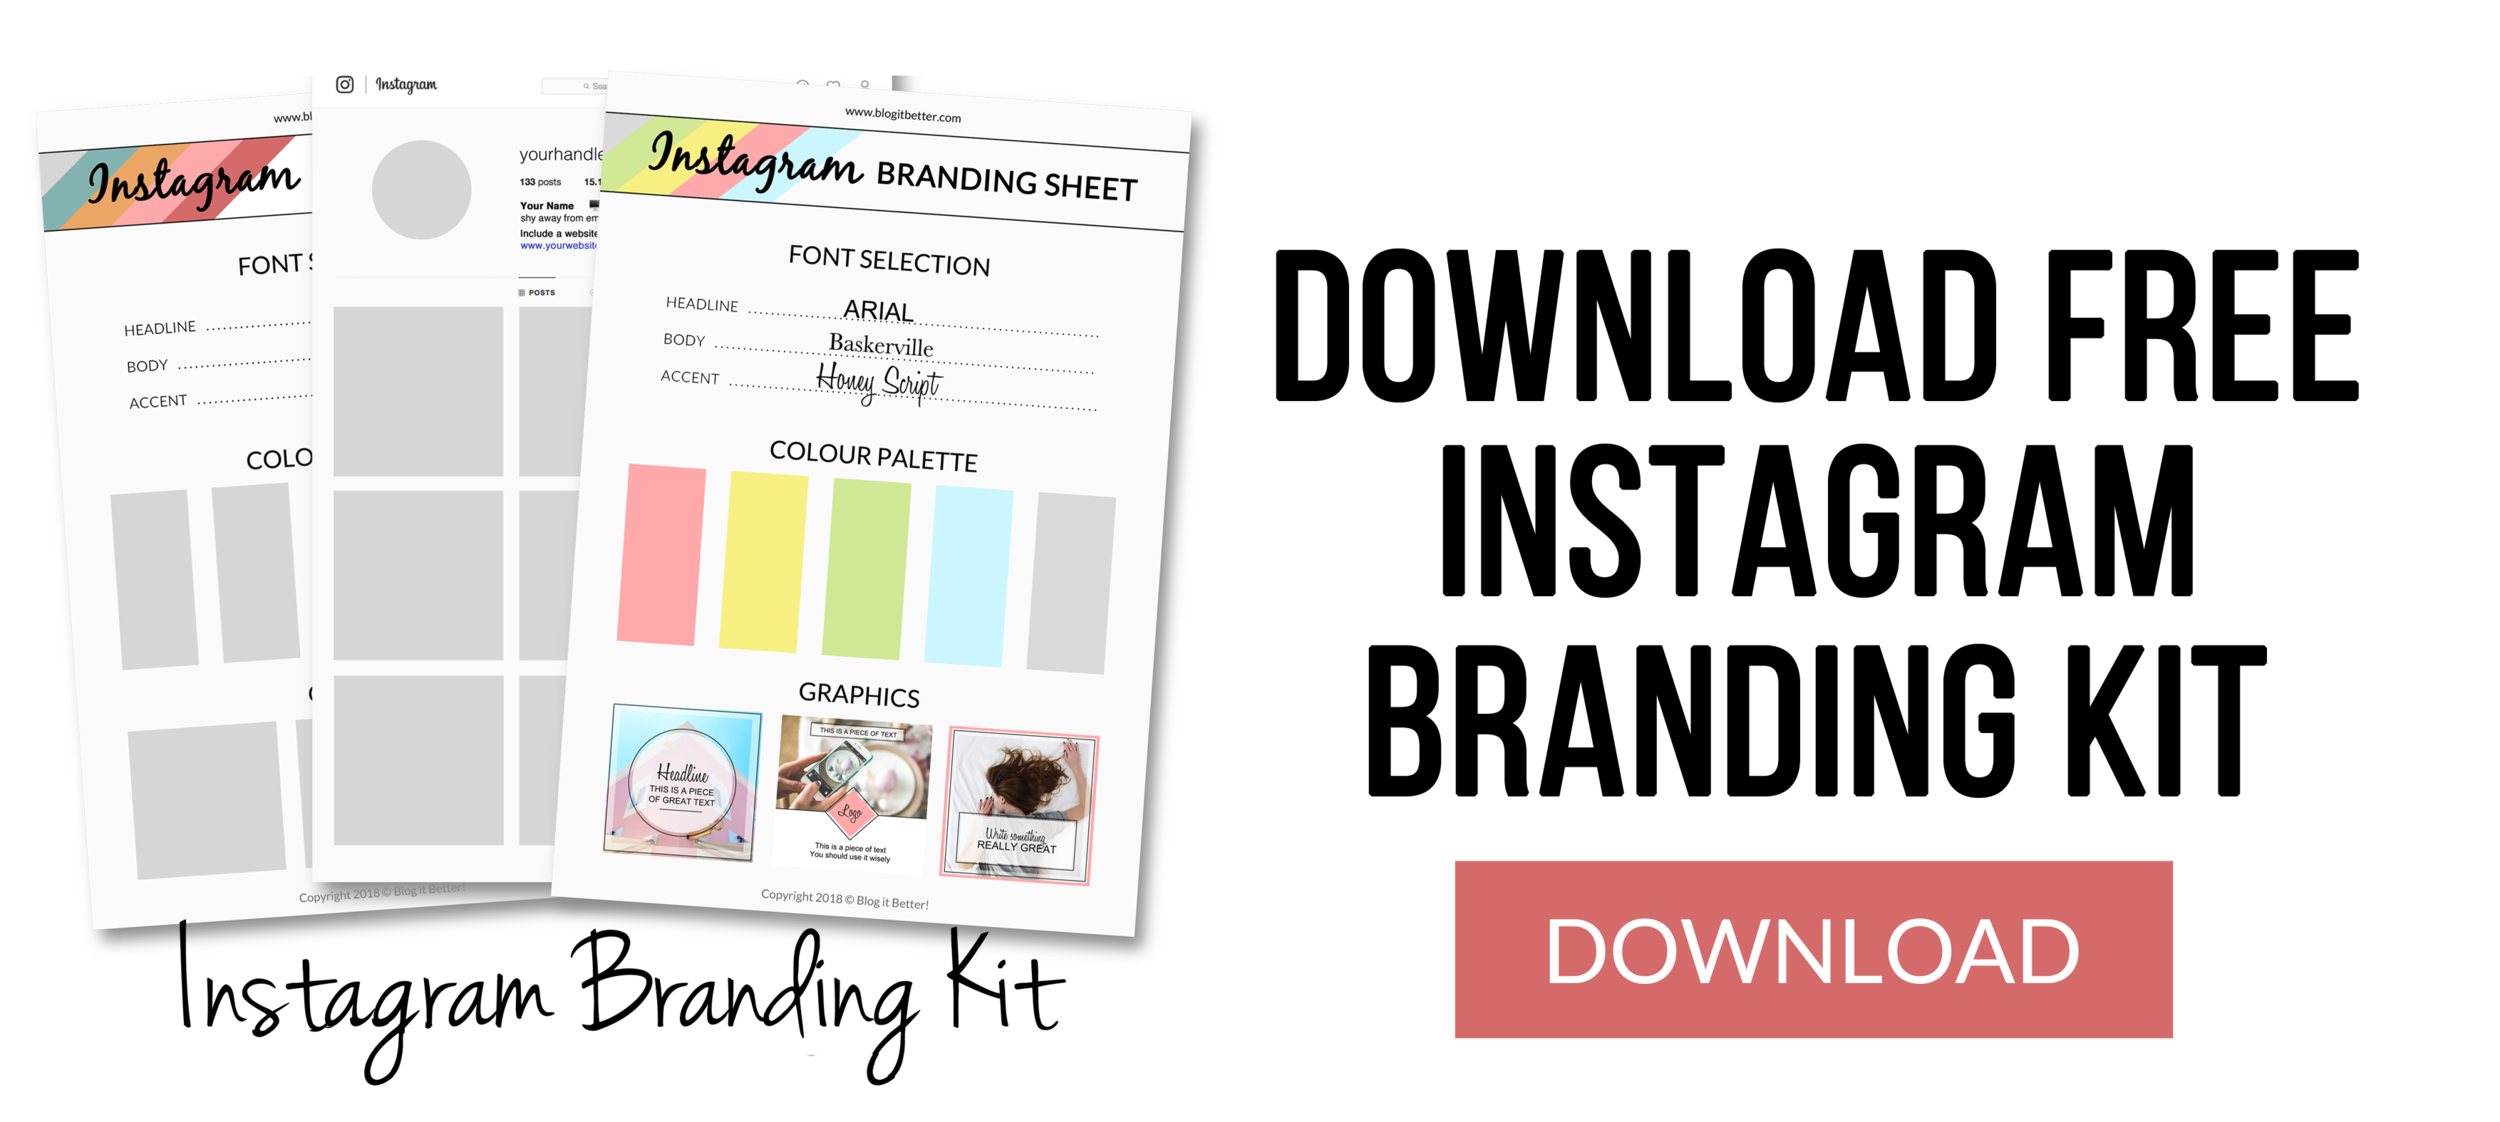 Download Free Instagram Branding Kit - Blog it Better - Blog Coaching & Social Media Help